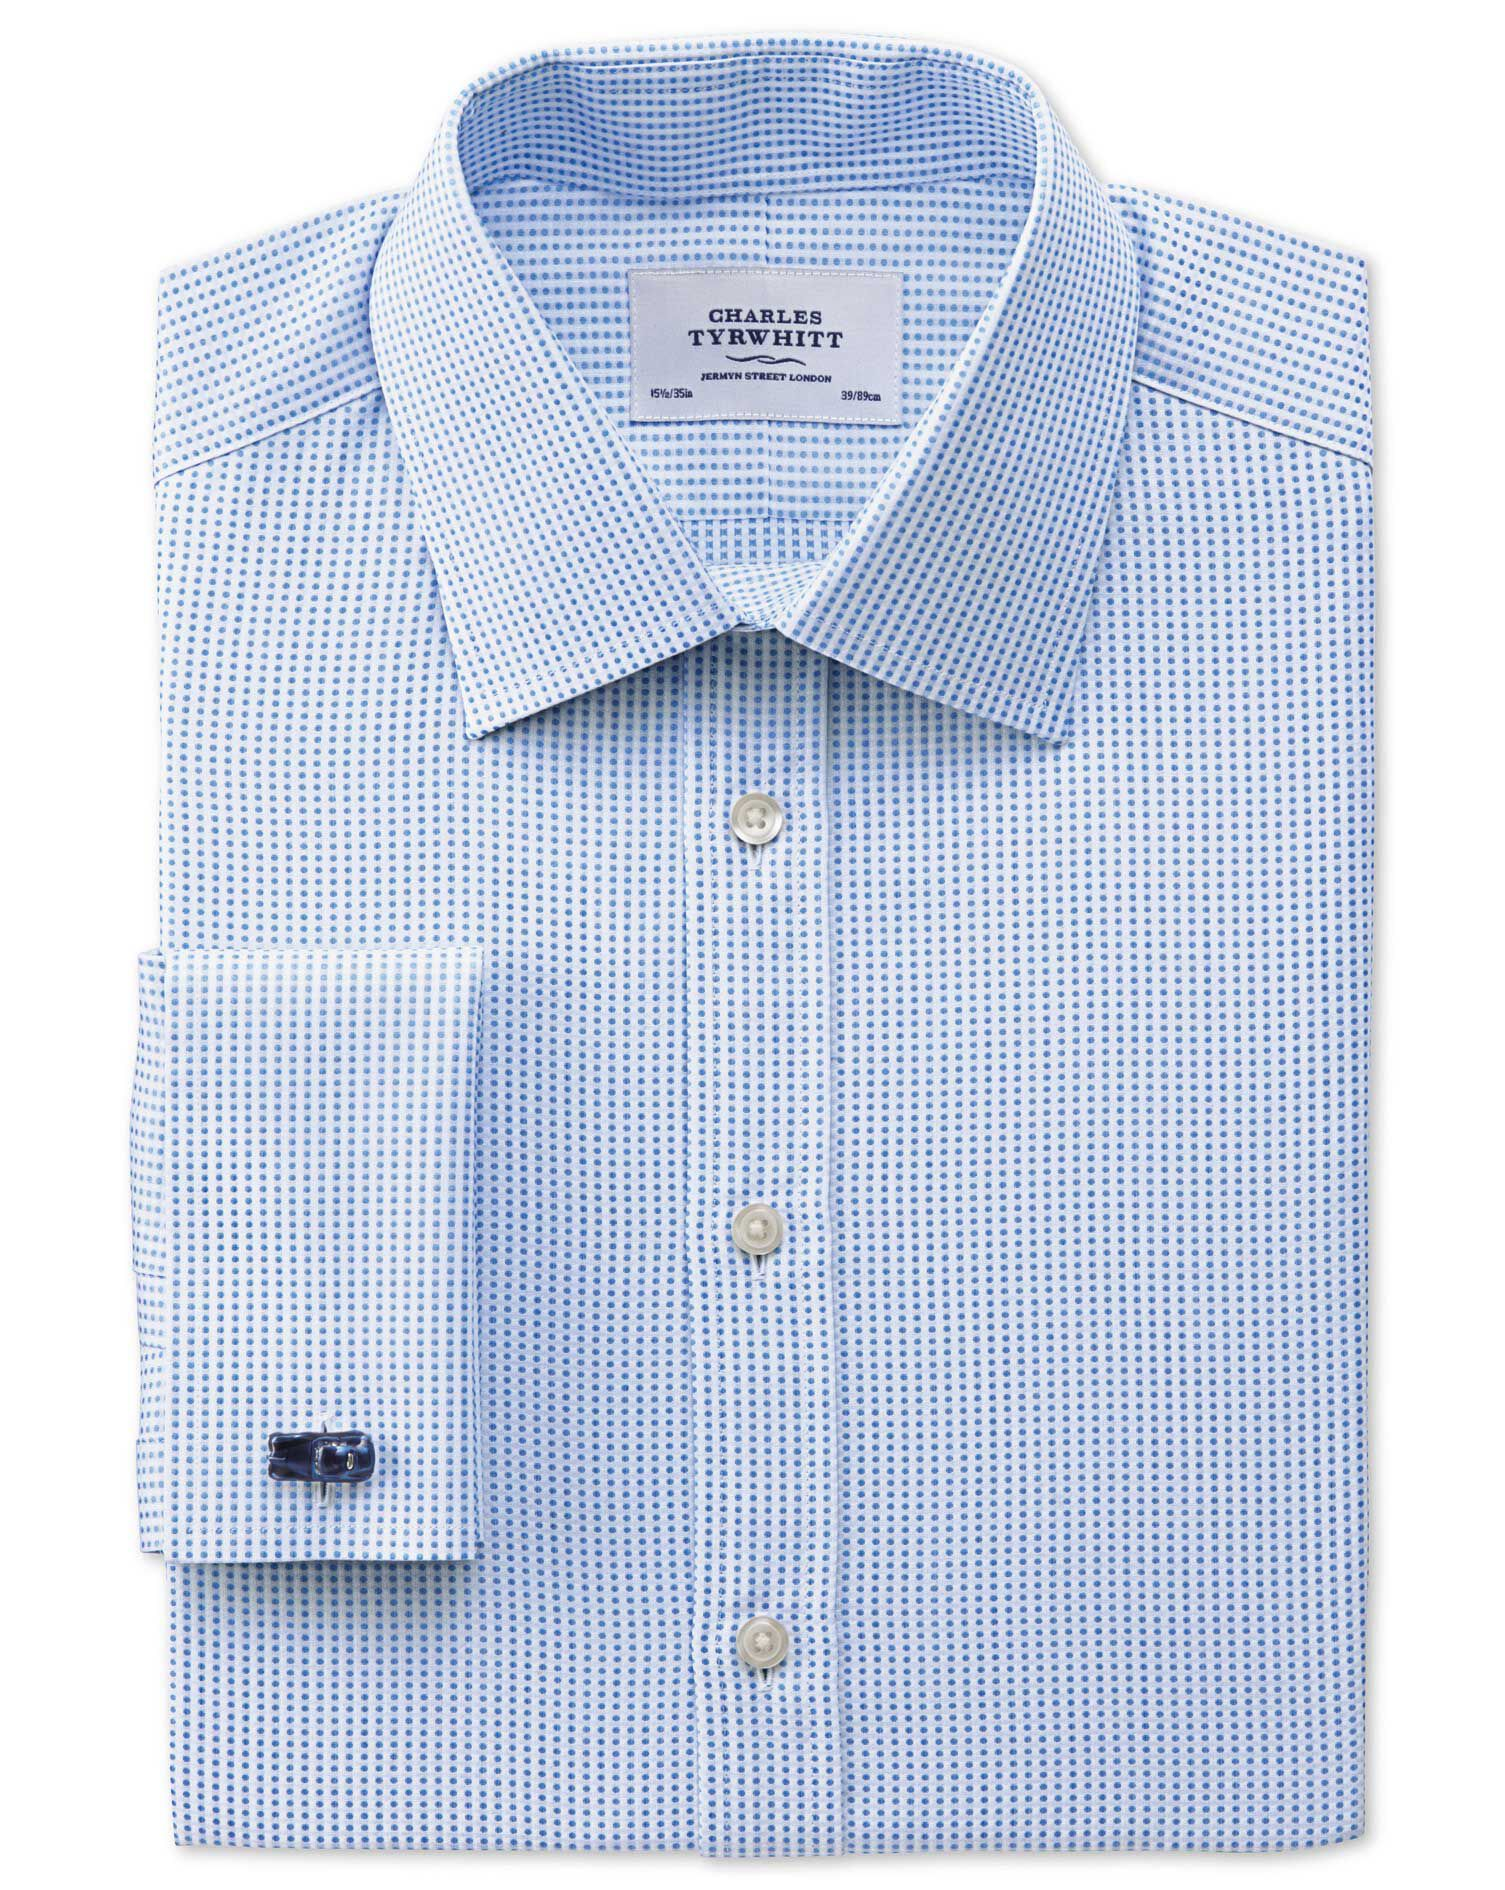 Slim Fit Pima Cotton Double-Faced Sky Blue Formal Shirt Double Cuff Size 18/35 by Charles Tyrwhitt